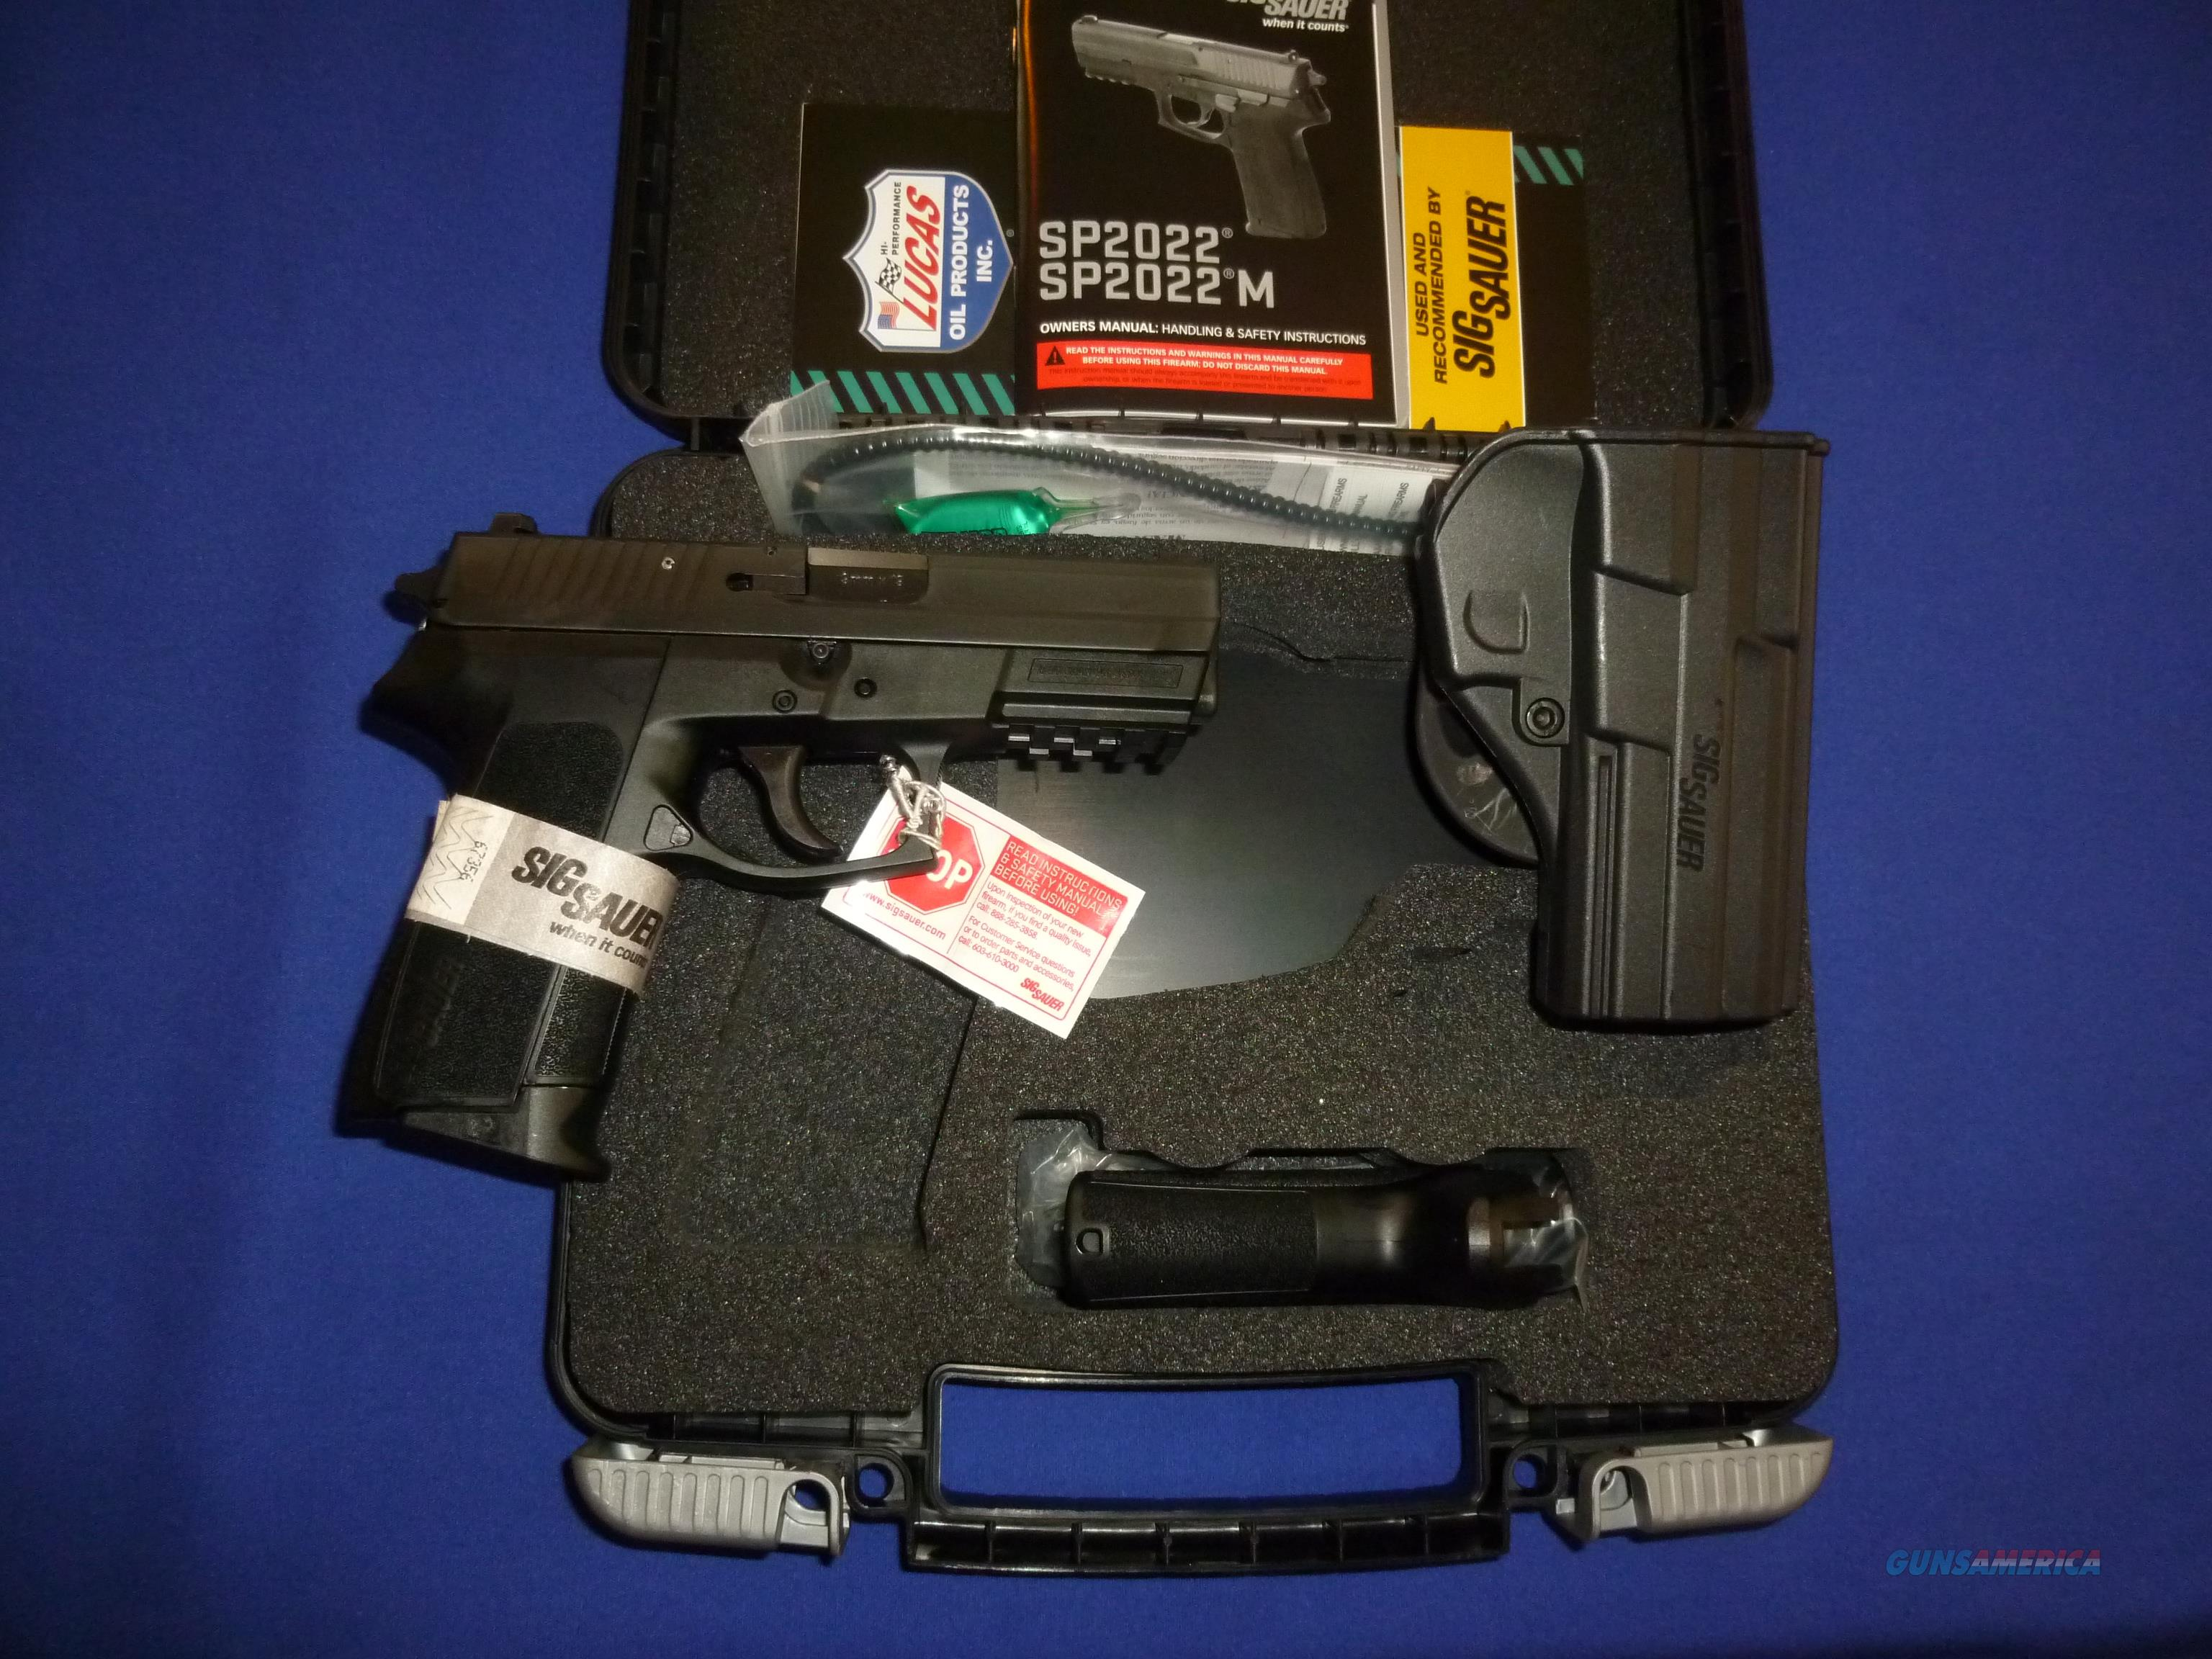 SALE PRICED! SIG SP2022 9MM PISTOL WITH CONTR... for sale